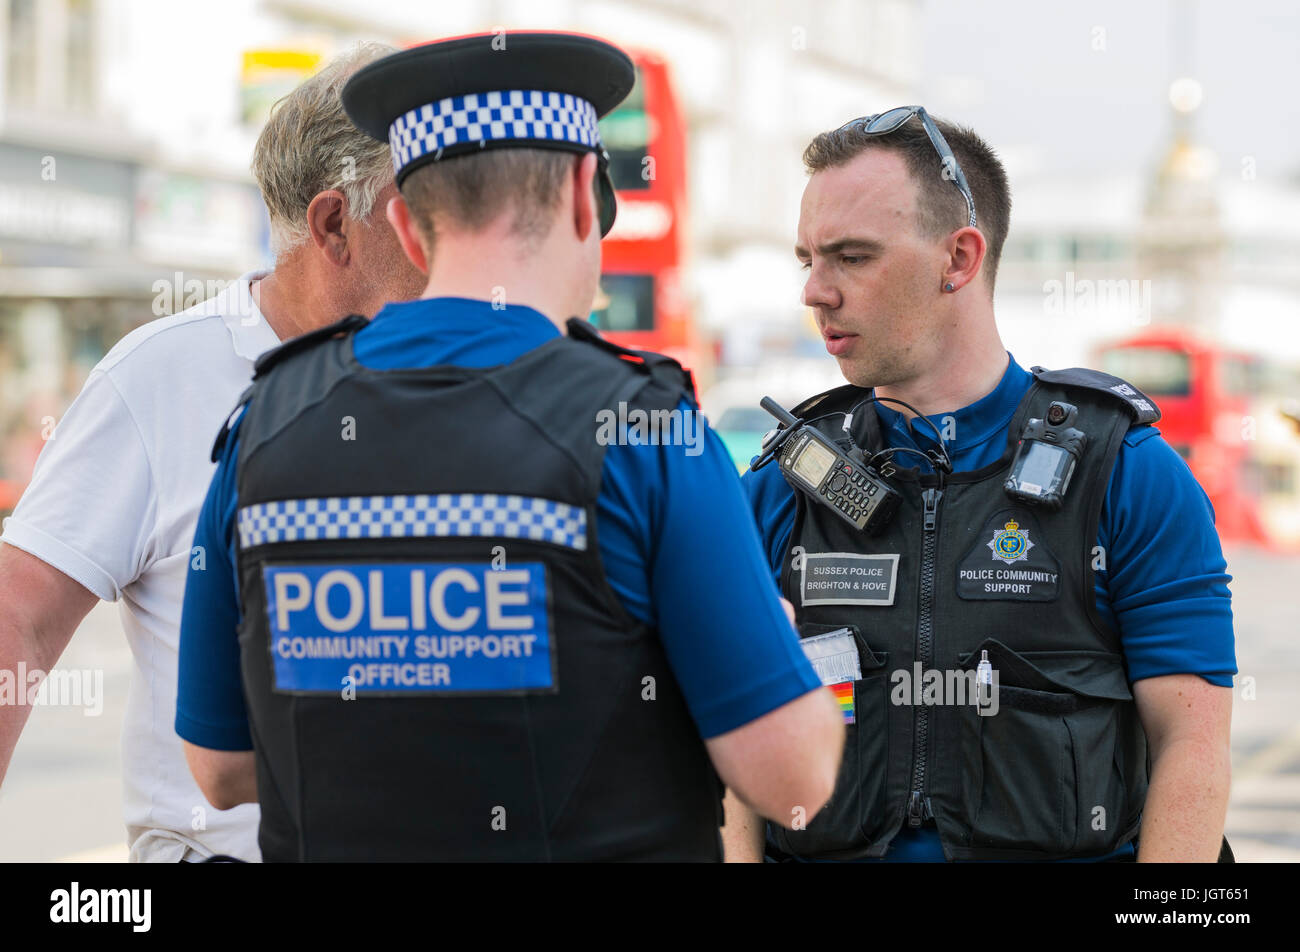 PCSOs (Police Community Support Officers) speaking to someone on the streets of Brighton, East Sussex, England, - Stock Image